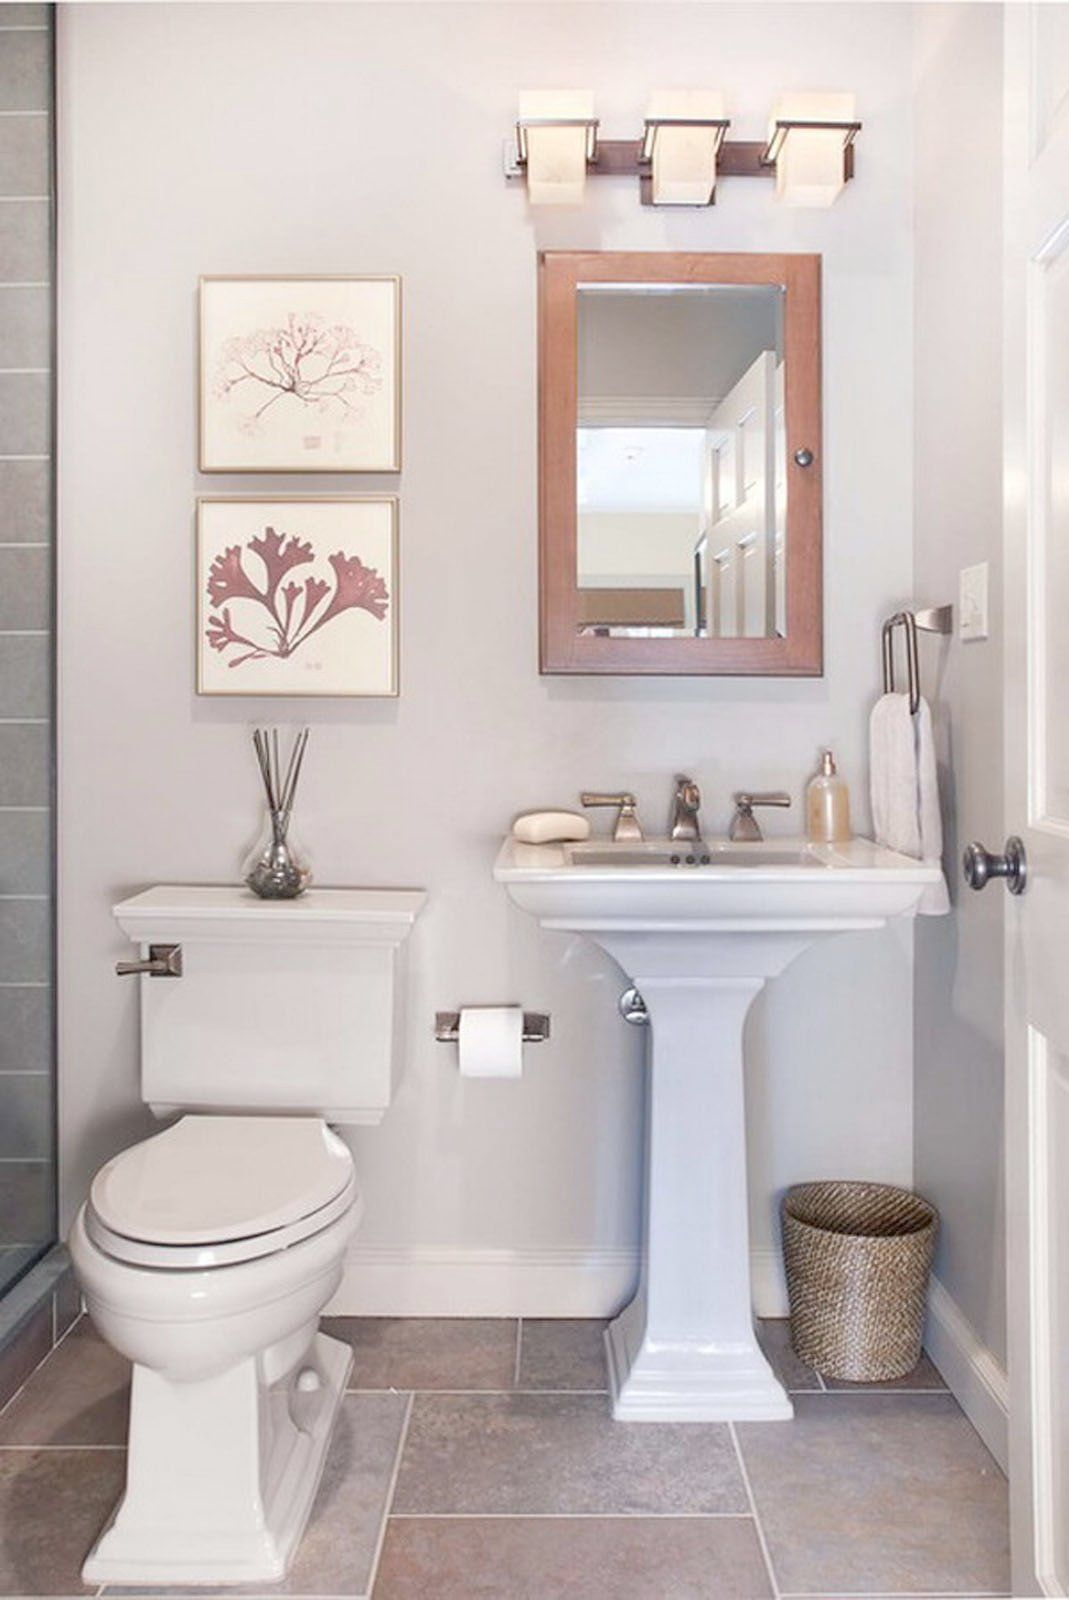 bathroom decorating ideas small spaces small space bathroom remodel ideas small half bathrooms  small  small space bathroom remodel ideas